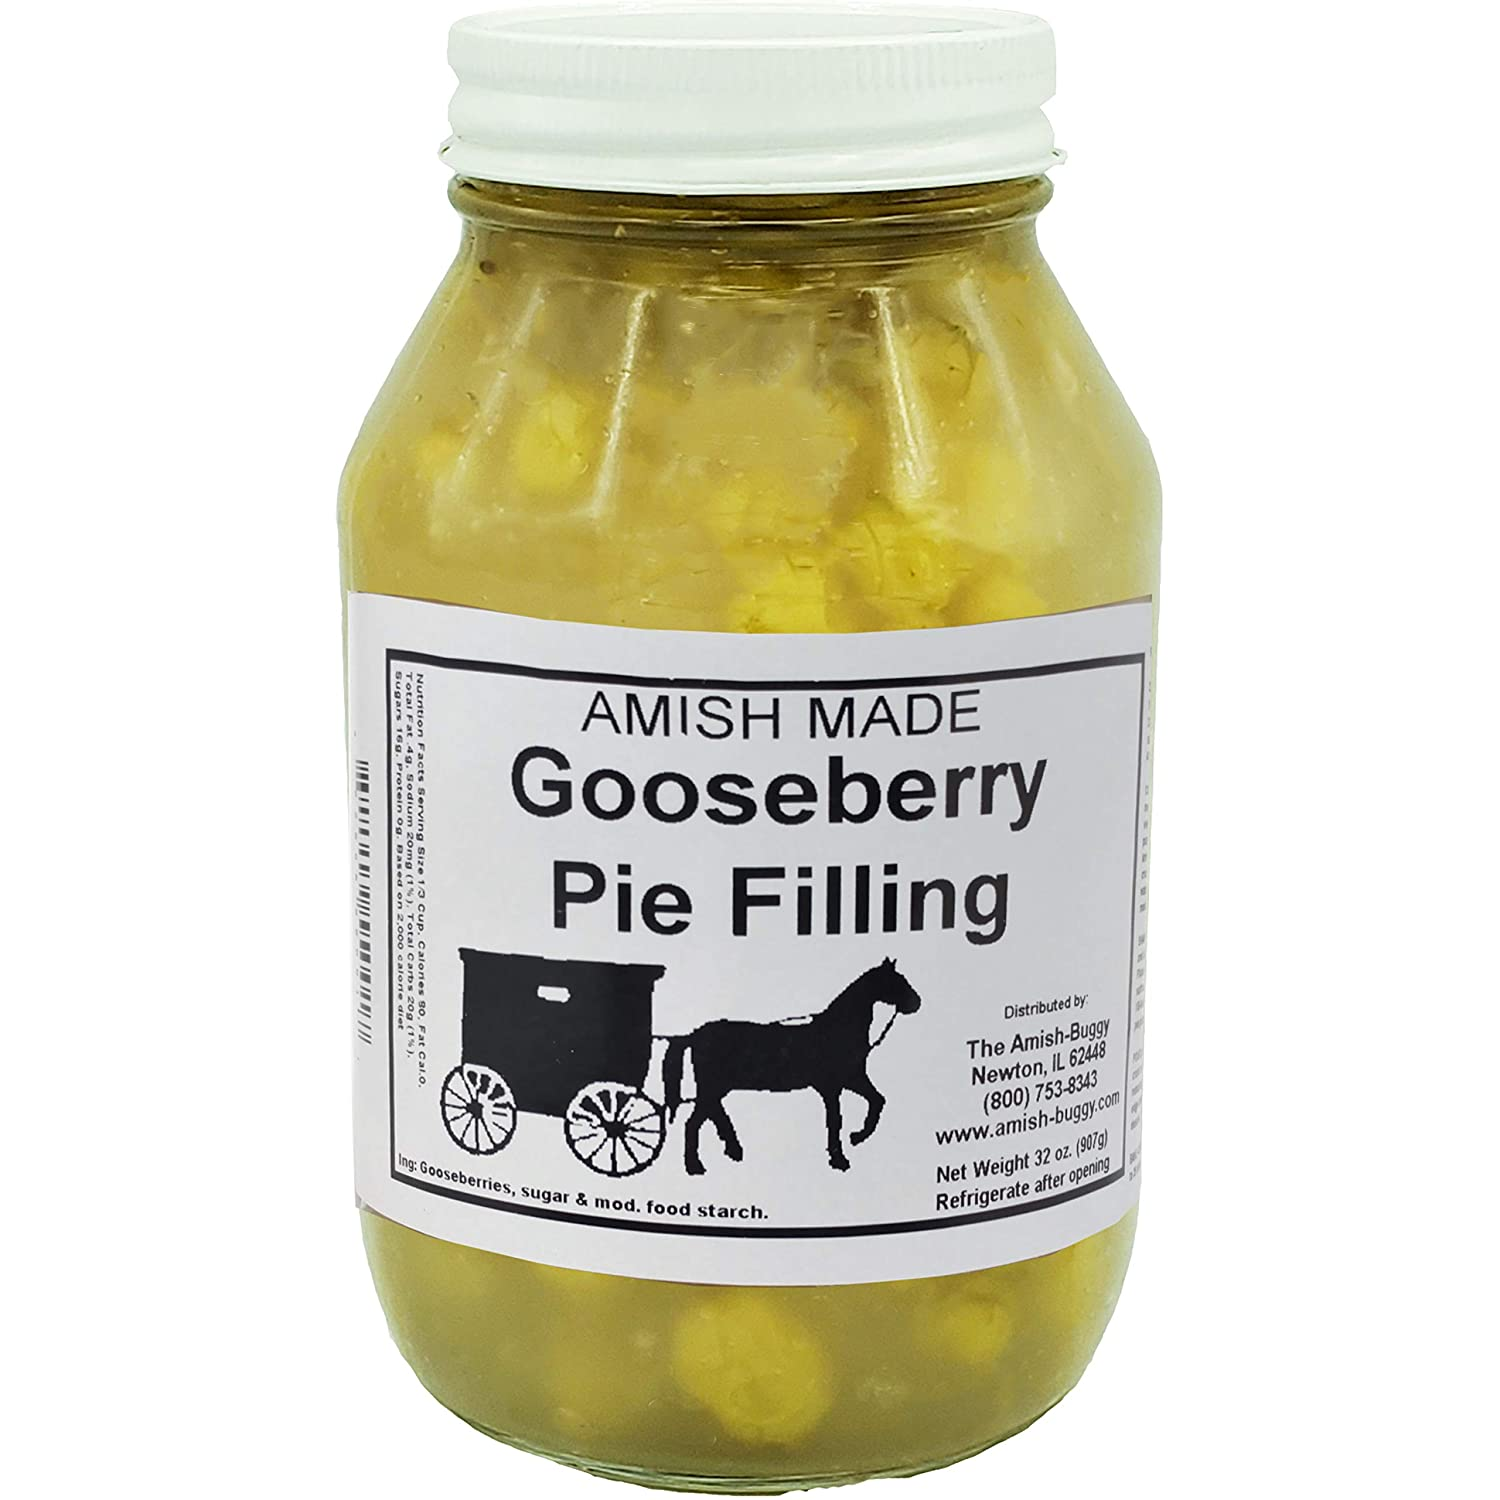 Amish Buggy Ready To Use Pie Filling Ranking TOP19 Topping Jar Goo New color oz. 32 and